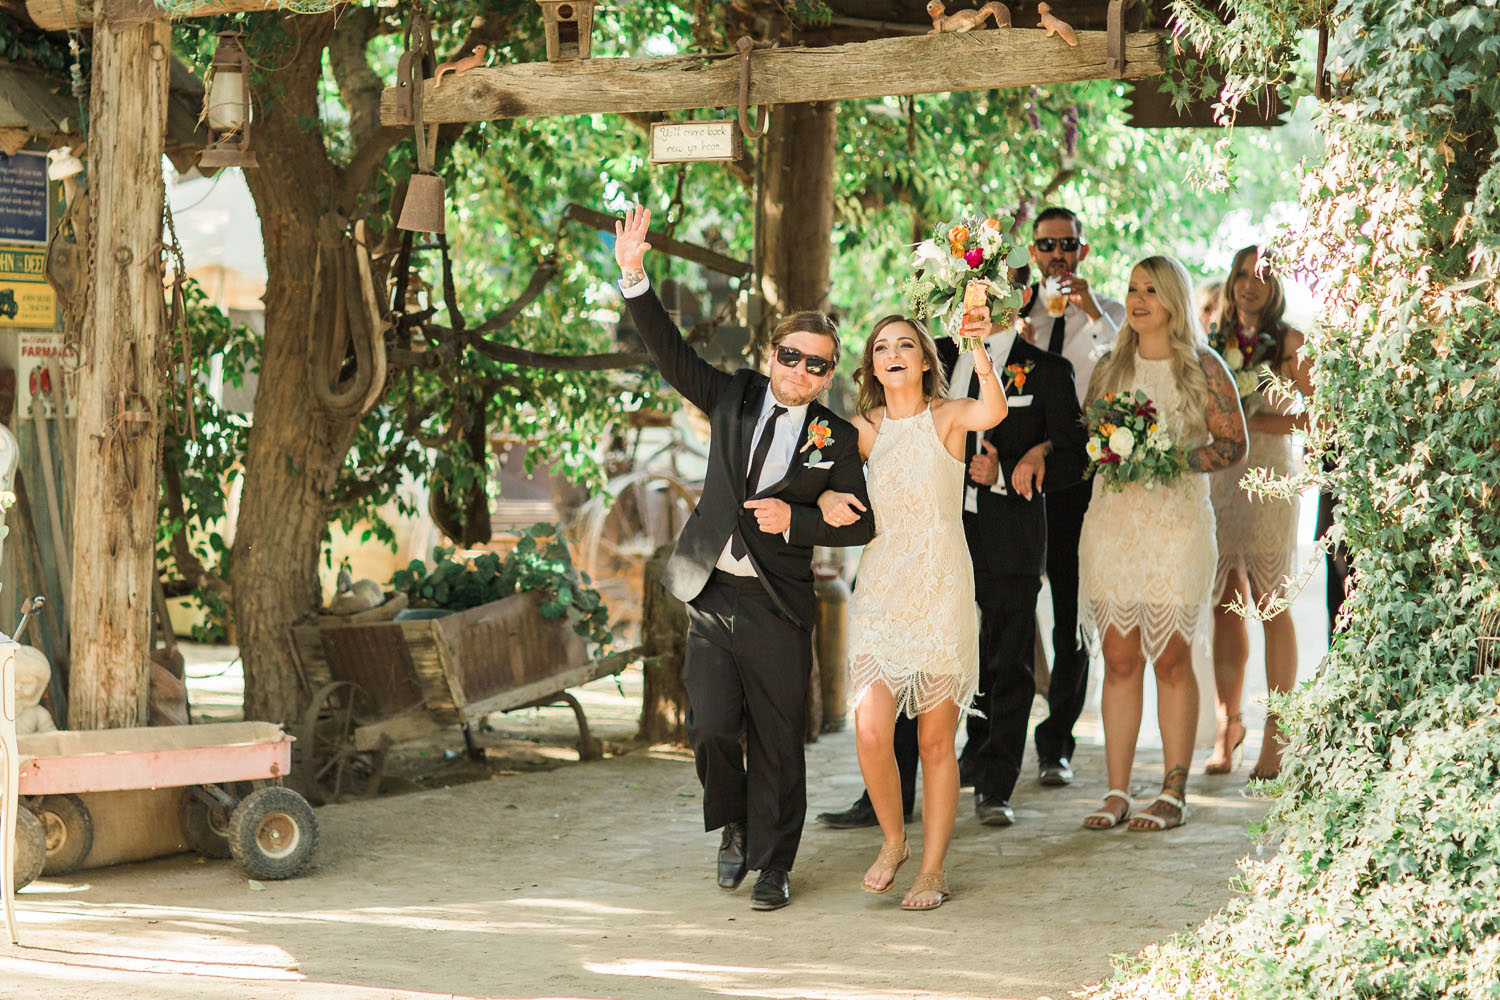 The Photege - Elegant Boho Wedding on Suburu Farm in Bakersfield California- Cassie and Darin Buoni-3042